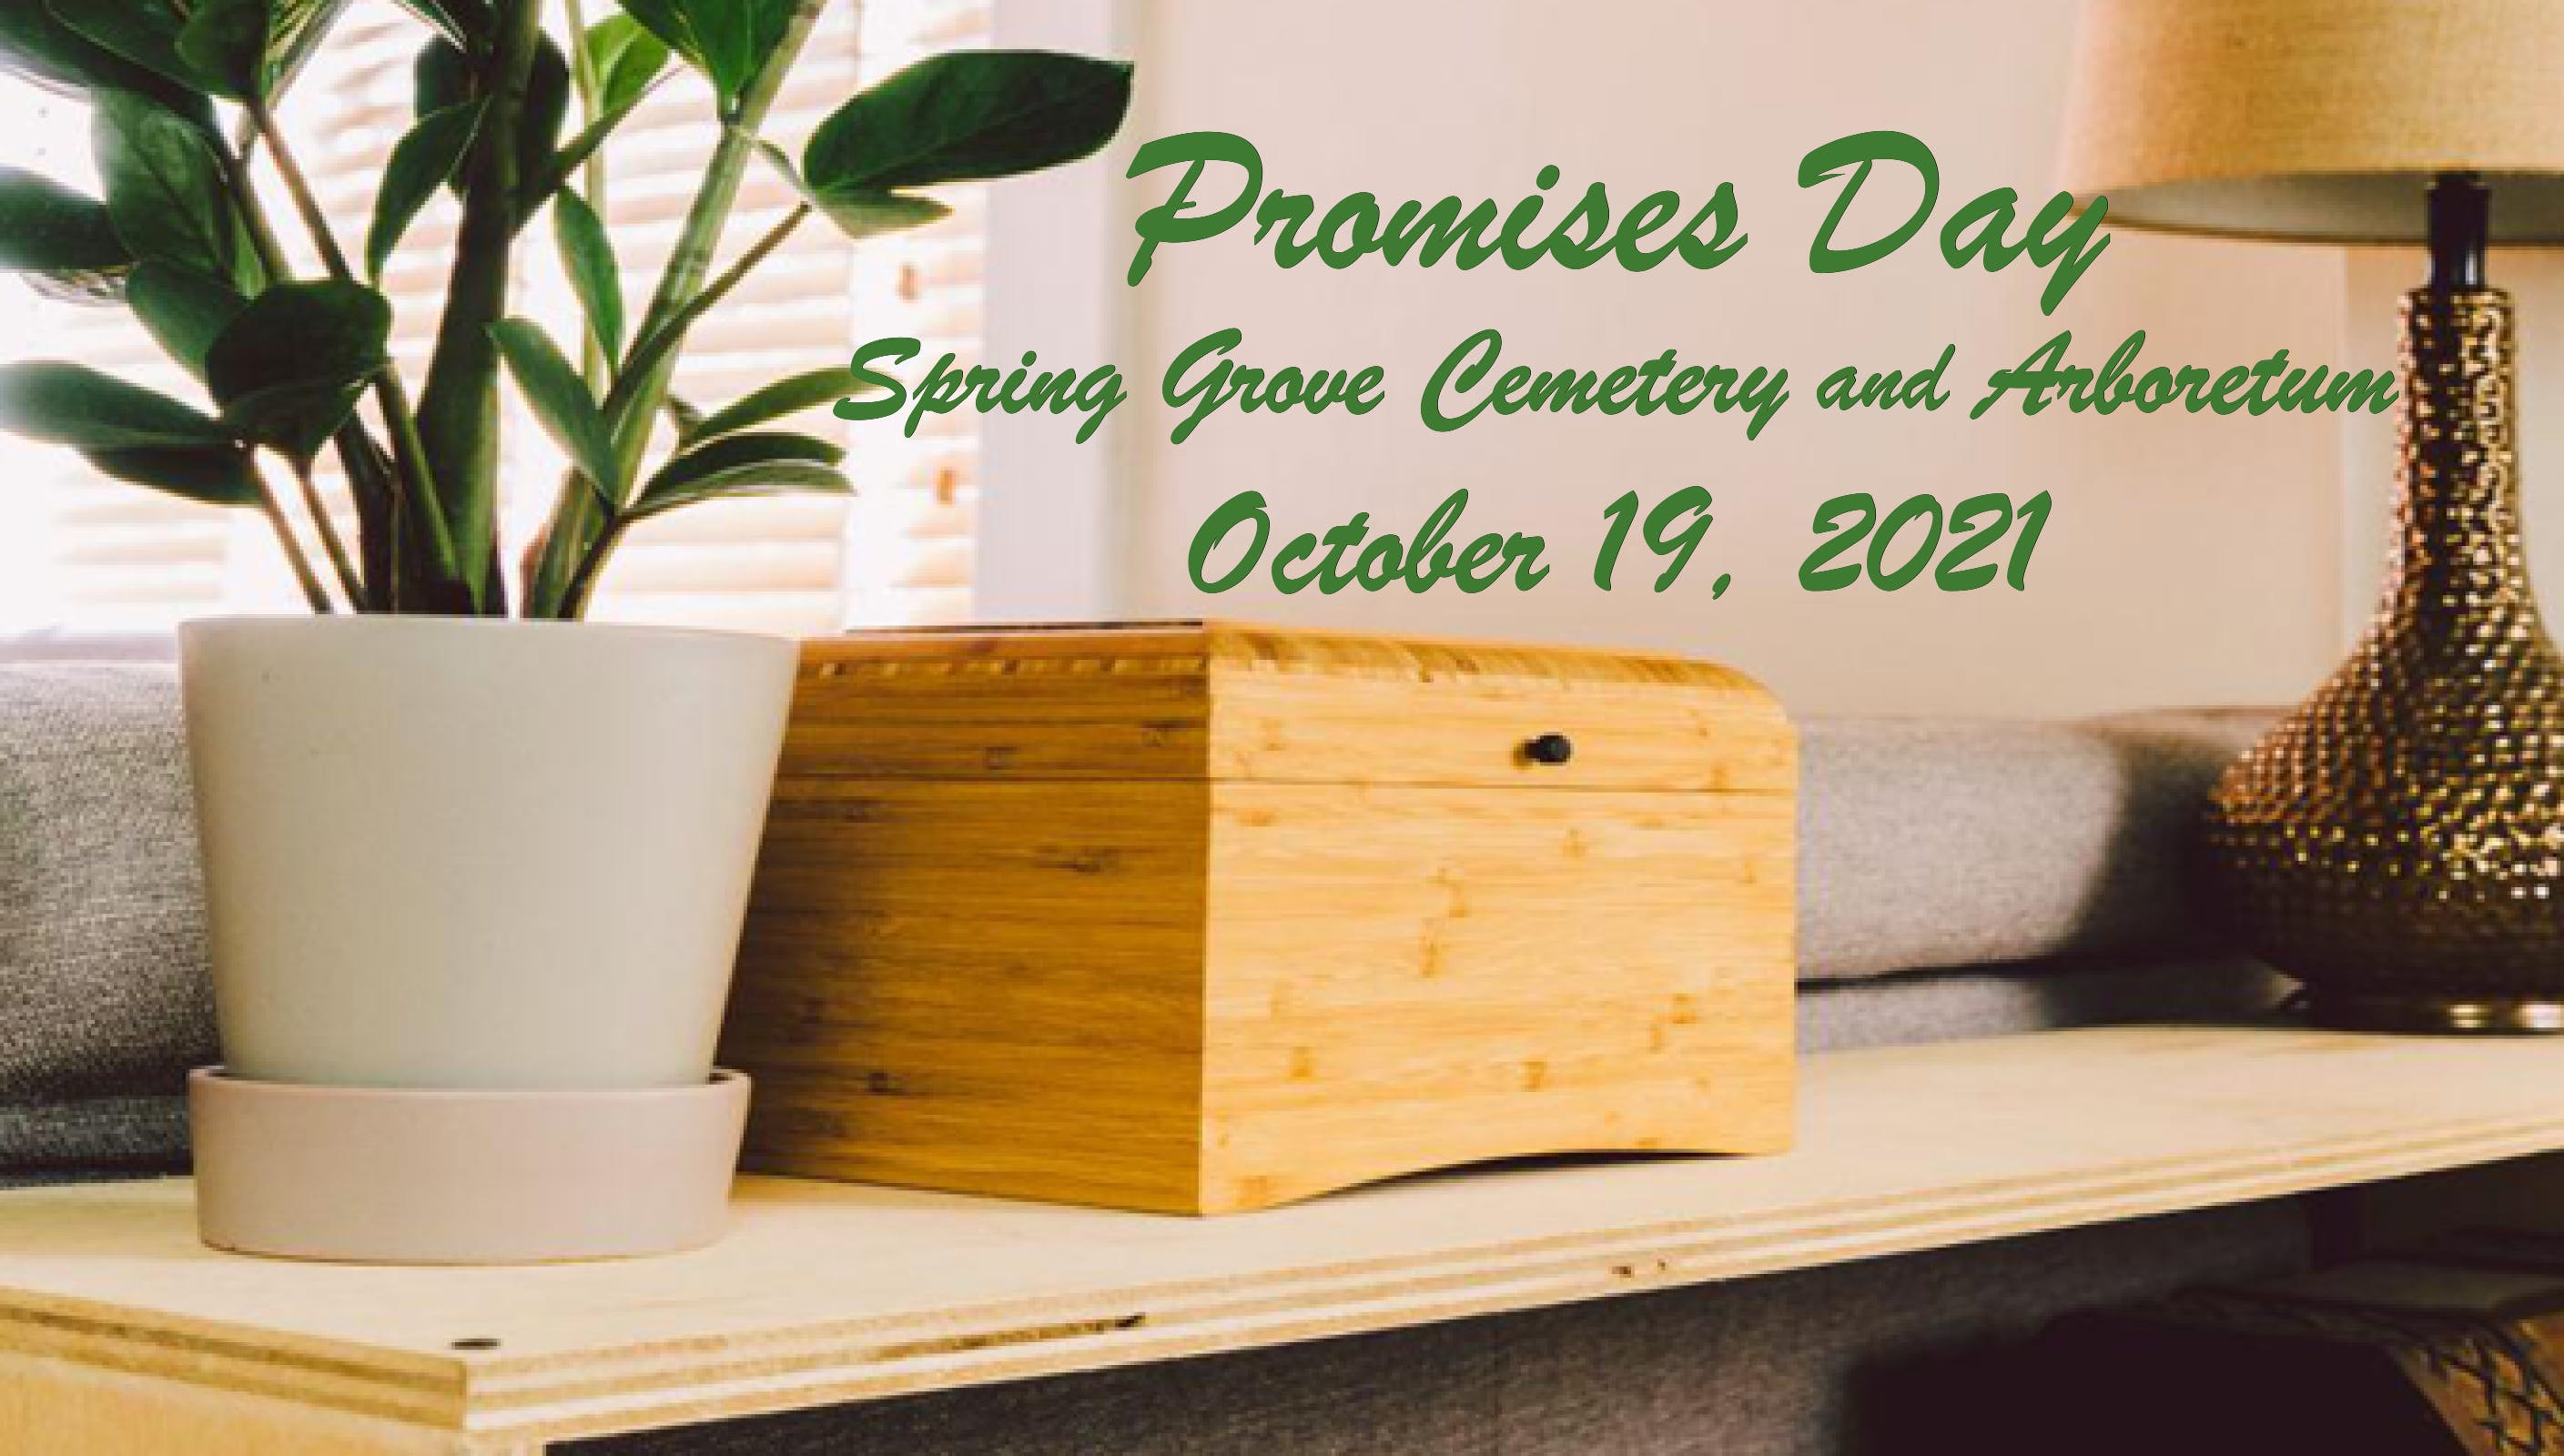 Spring Grove Promises Day 2021